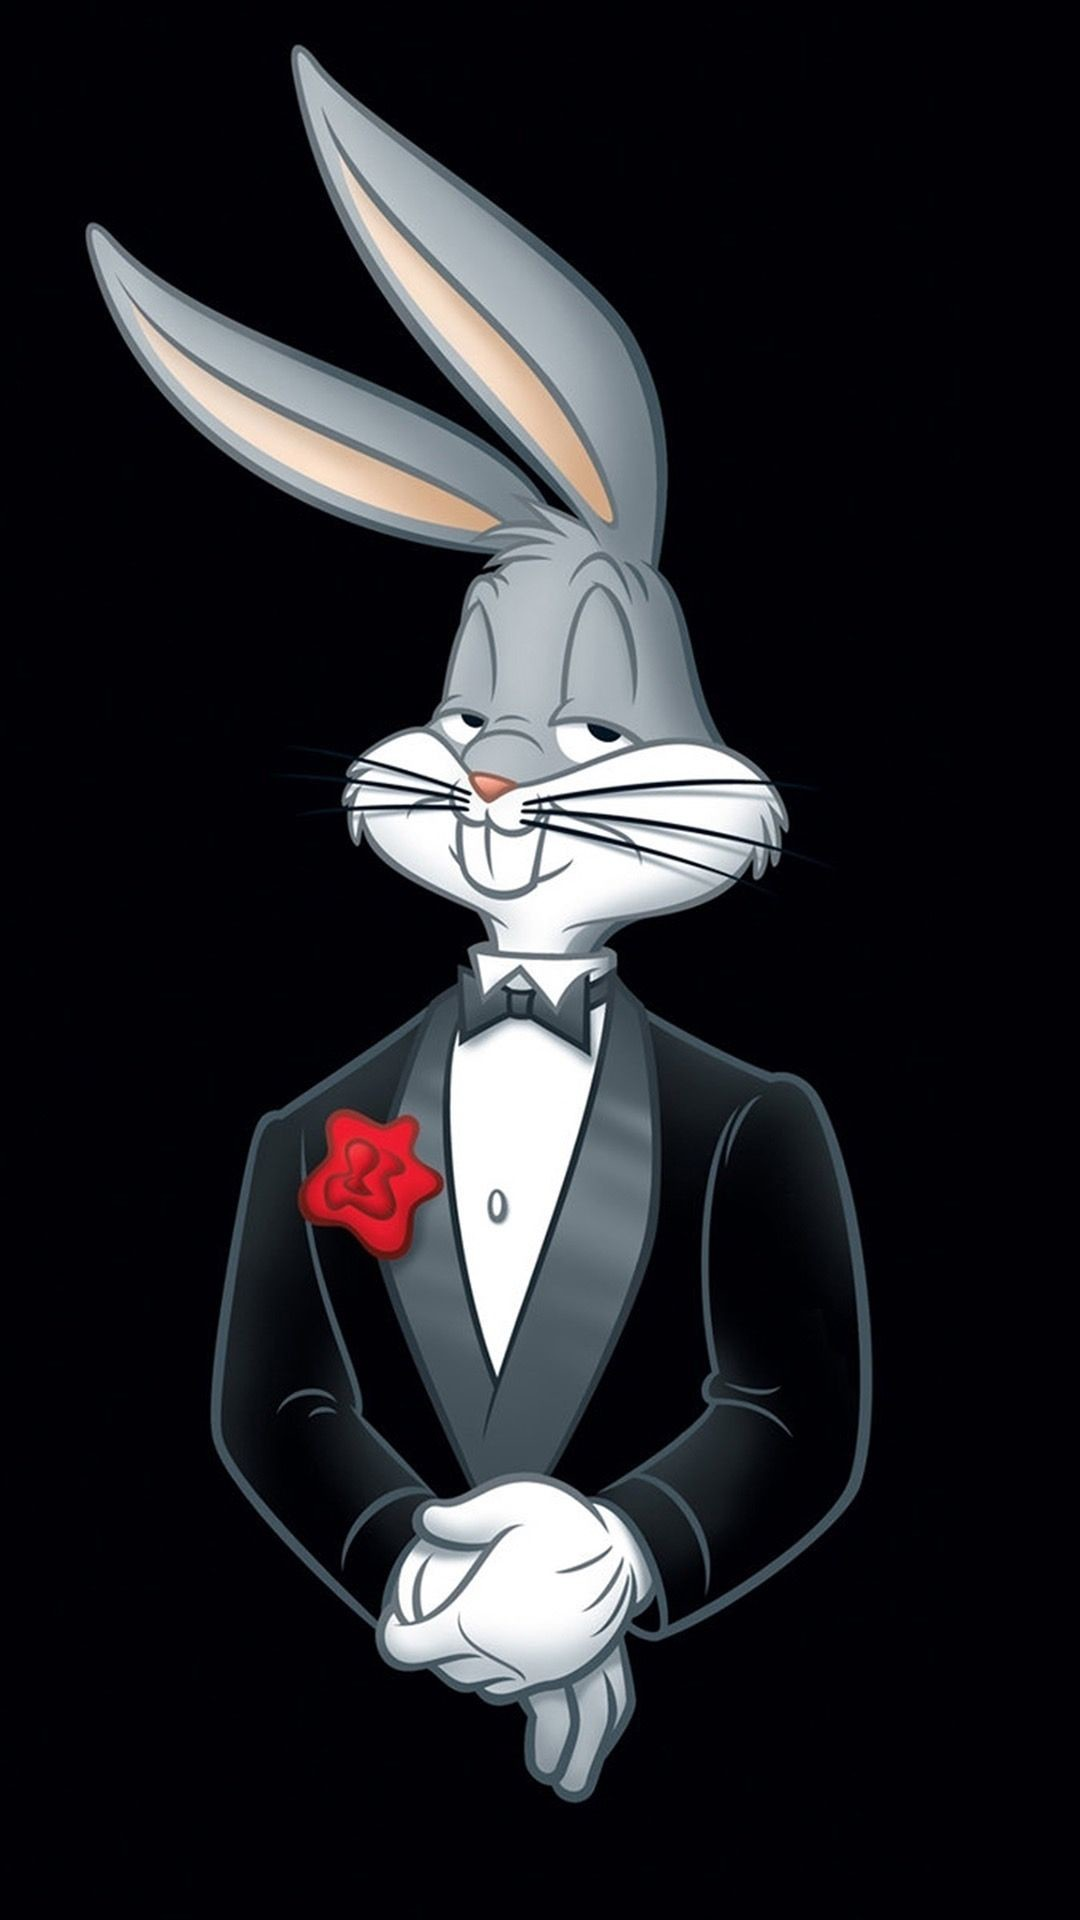 Res: 1080x1920, a sharp dressed rabbit